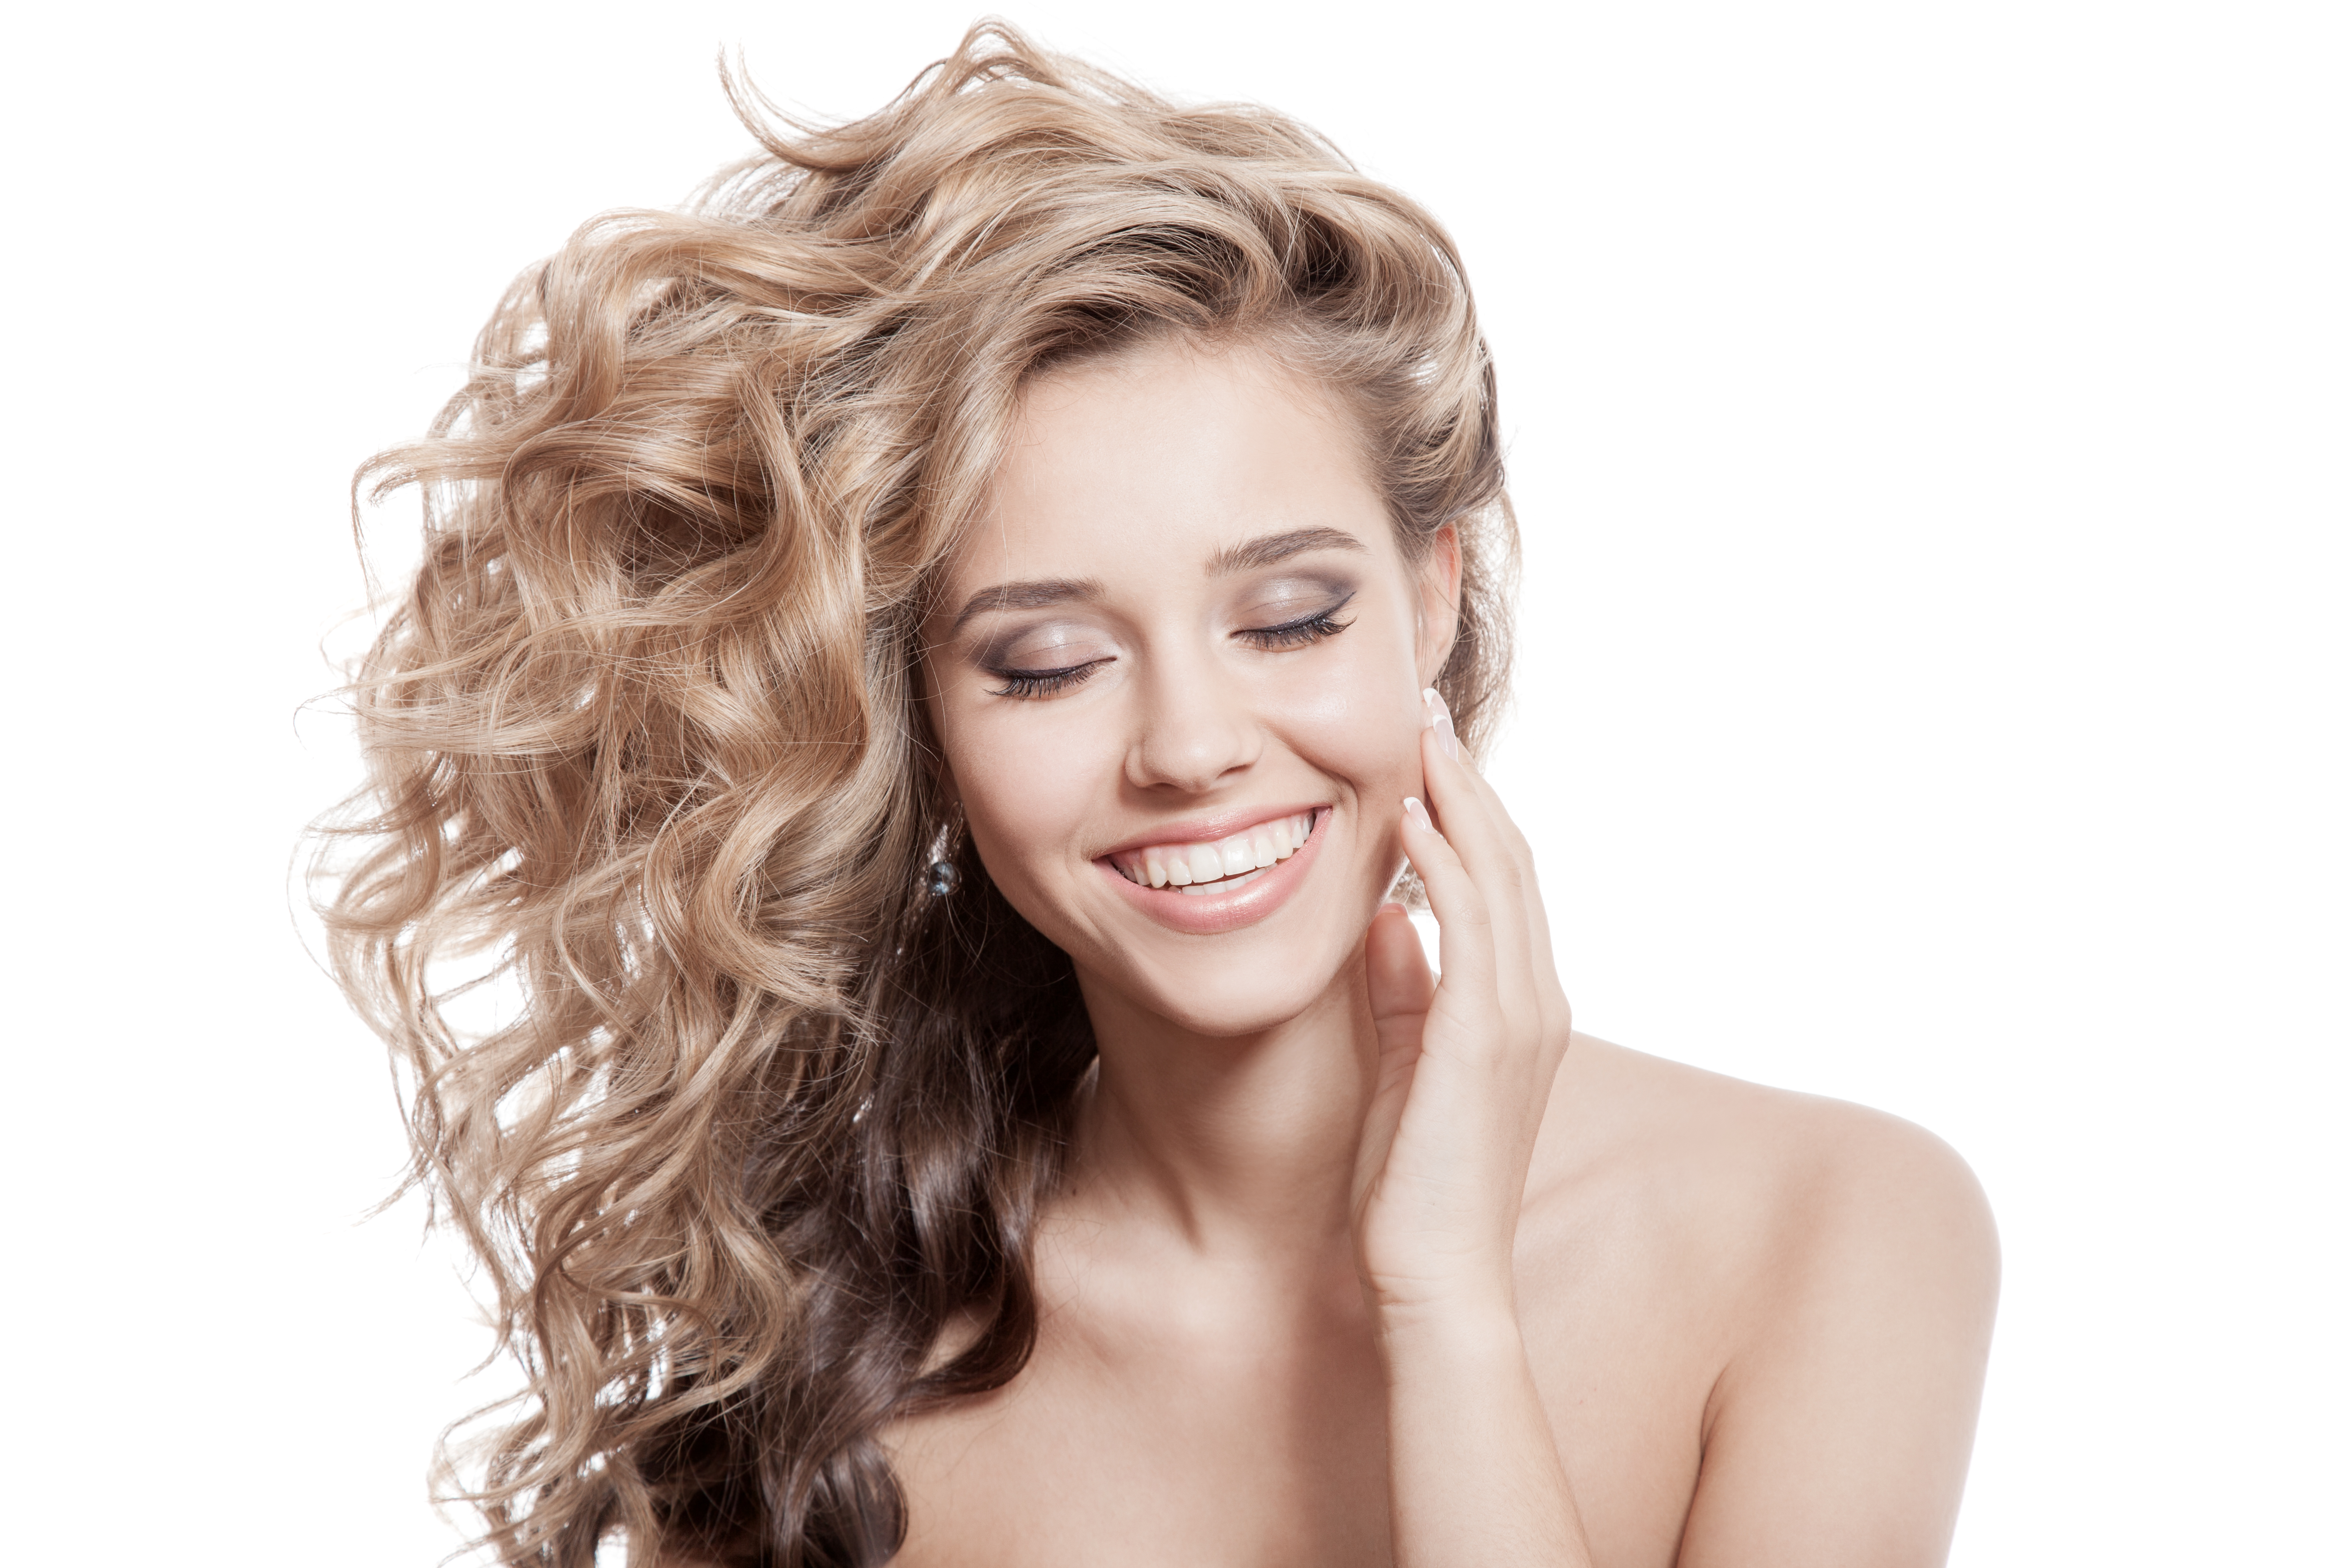 Beautiful Smiling Woman. Healthy Long Curly Hair - Remy Hair ...